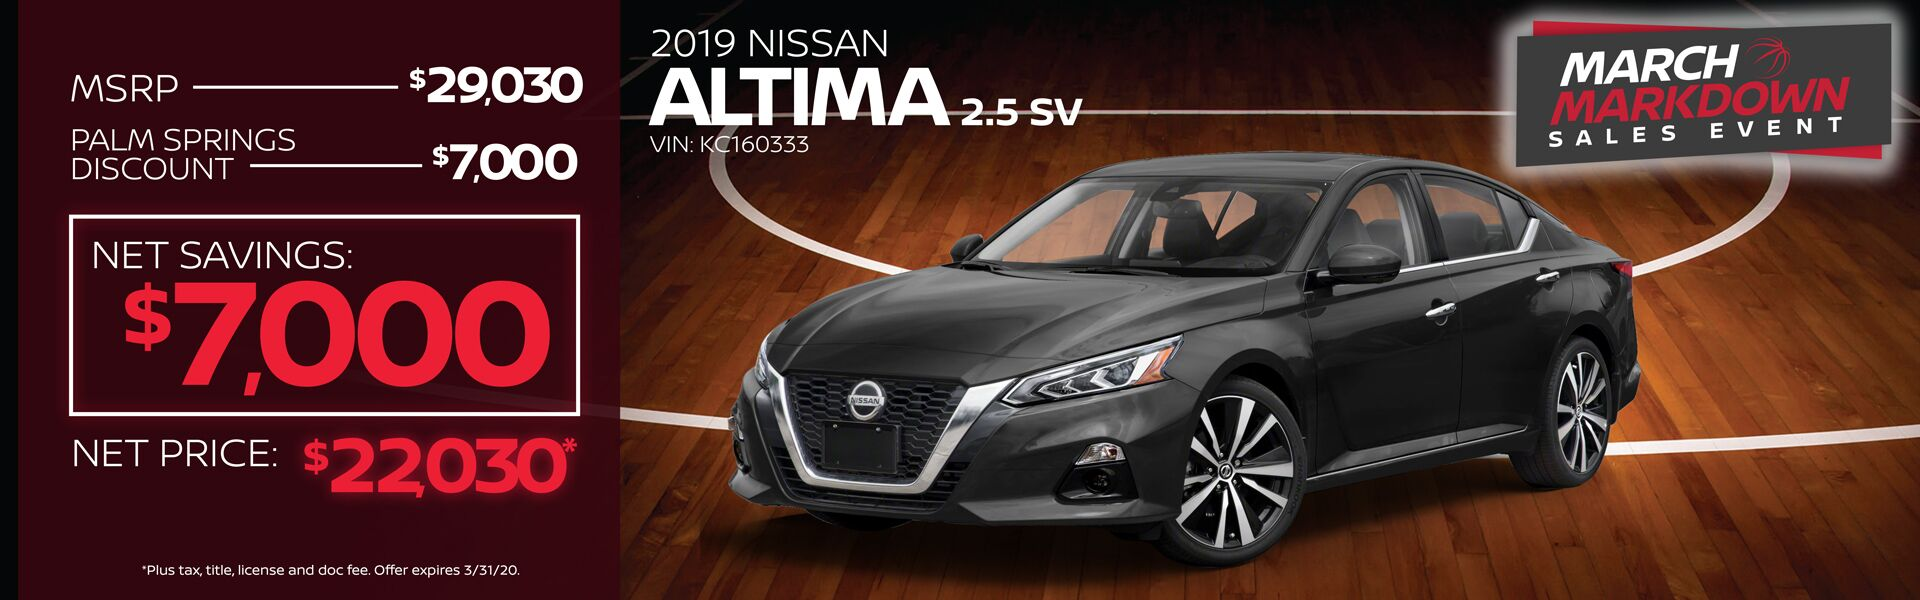 2019 Altima $7,500 Palm Springs Discount